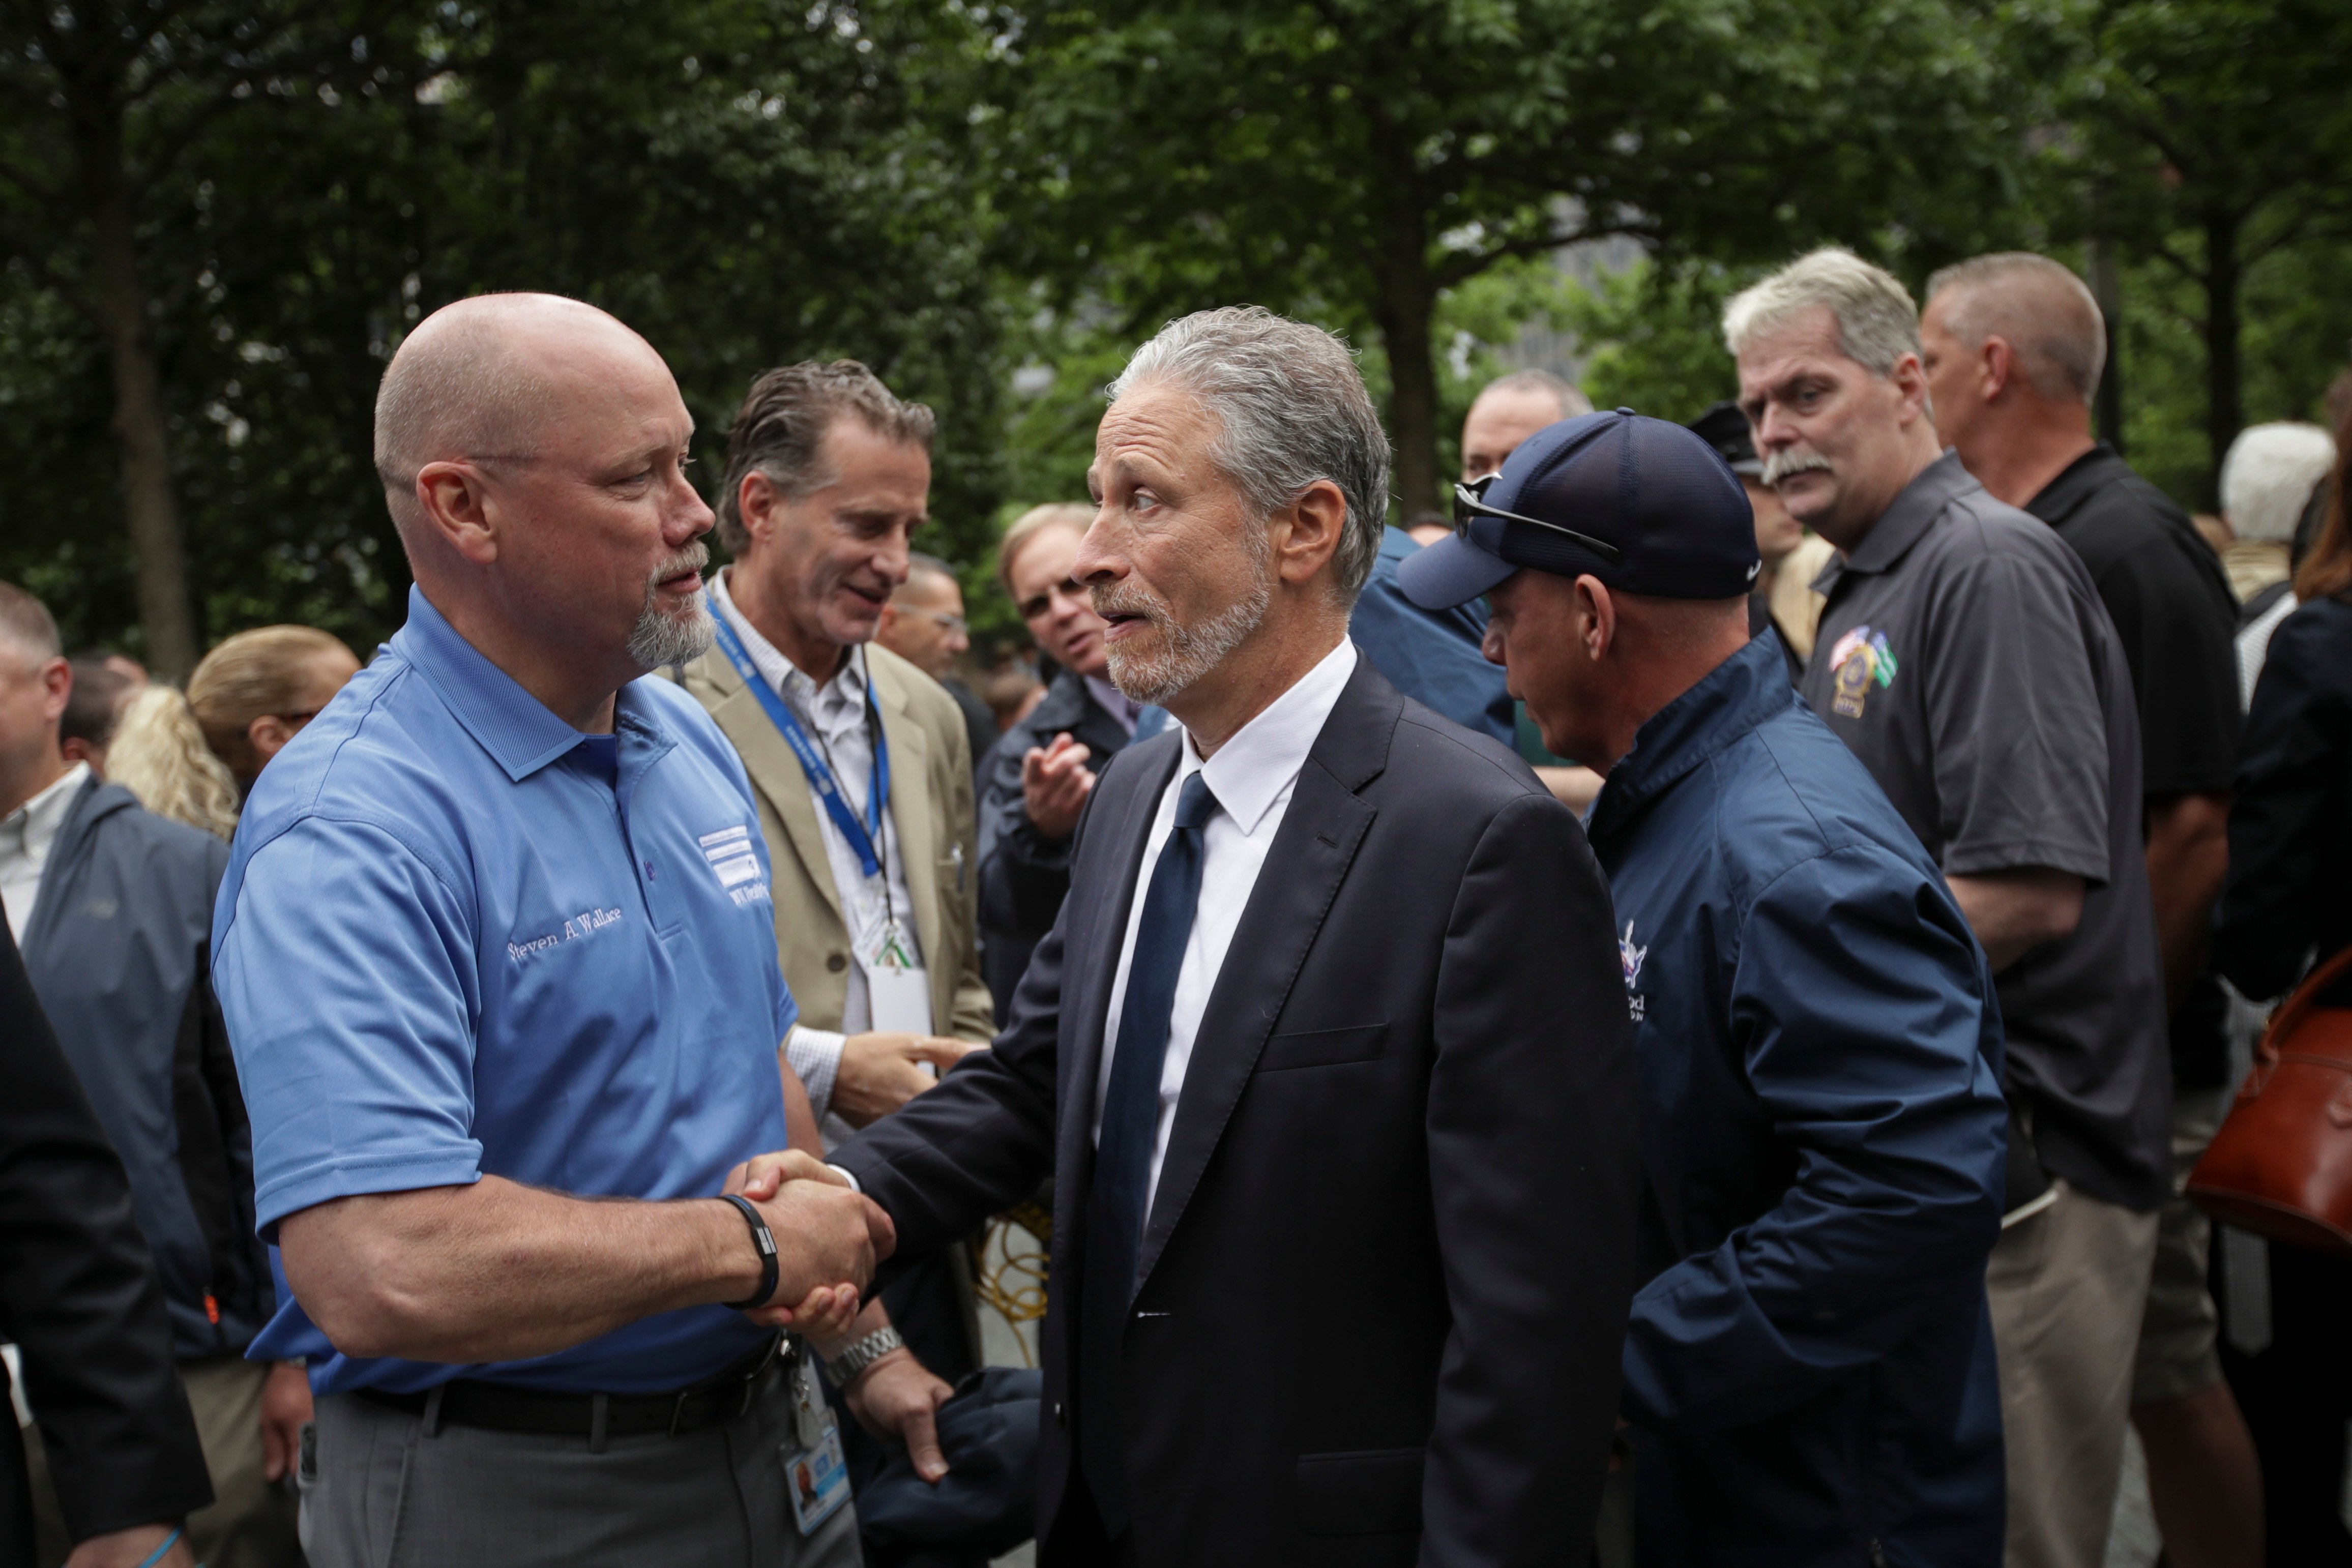 NEW YORK, NY - MAY 30: Comedian and 9/11 healthcare advocate Jon Stewart greets attendees at the dedication ceremony for the new 9/11 Memorial Glade at the National September 11 Memorial, May 30, 2019 in New York City. The 9/11 Memorial Glade honors the first responders who are sick or have died from exposure to toxins in the aftermath of the attacks and recovery efforts. The signature piece of the memorial are six stone monoliths that are inlaid with World Trade Center steel. (Photo by Drew Angerer/Getty Images)